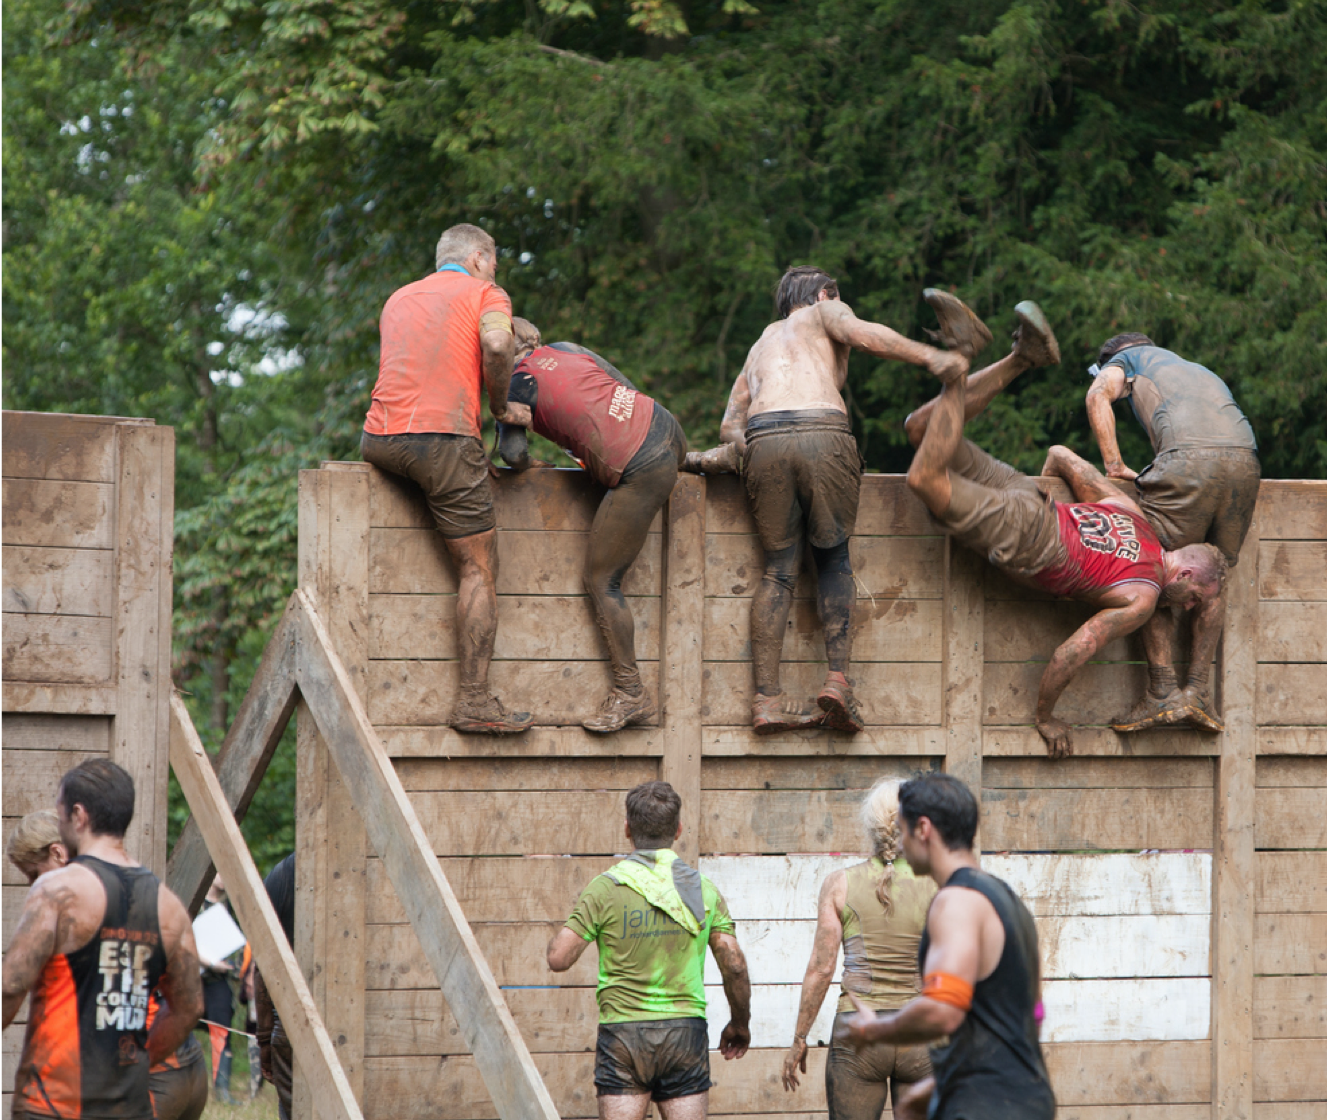 obstacle course participants